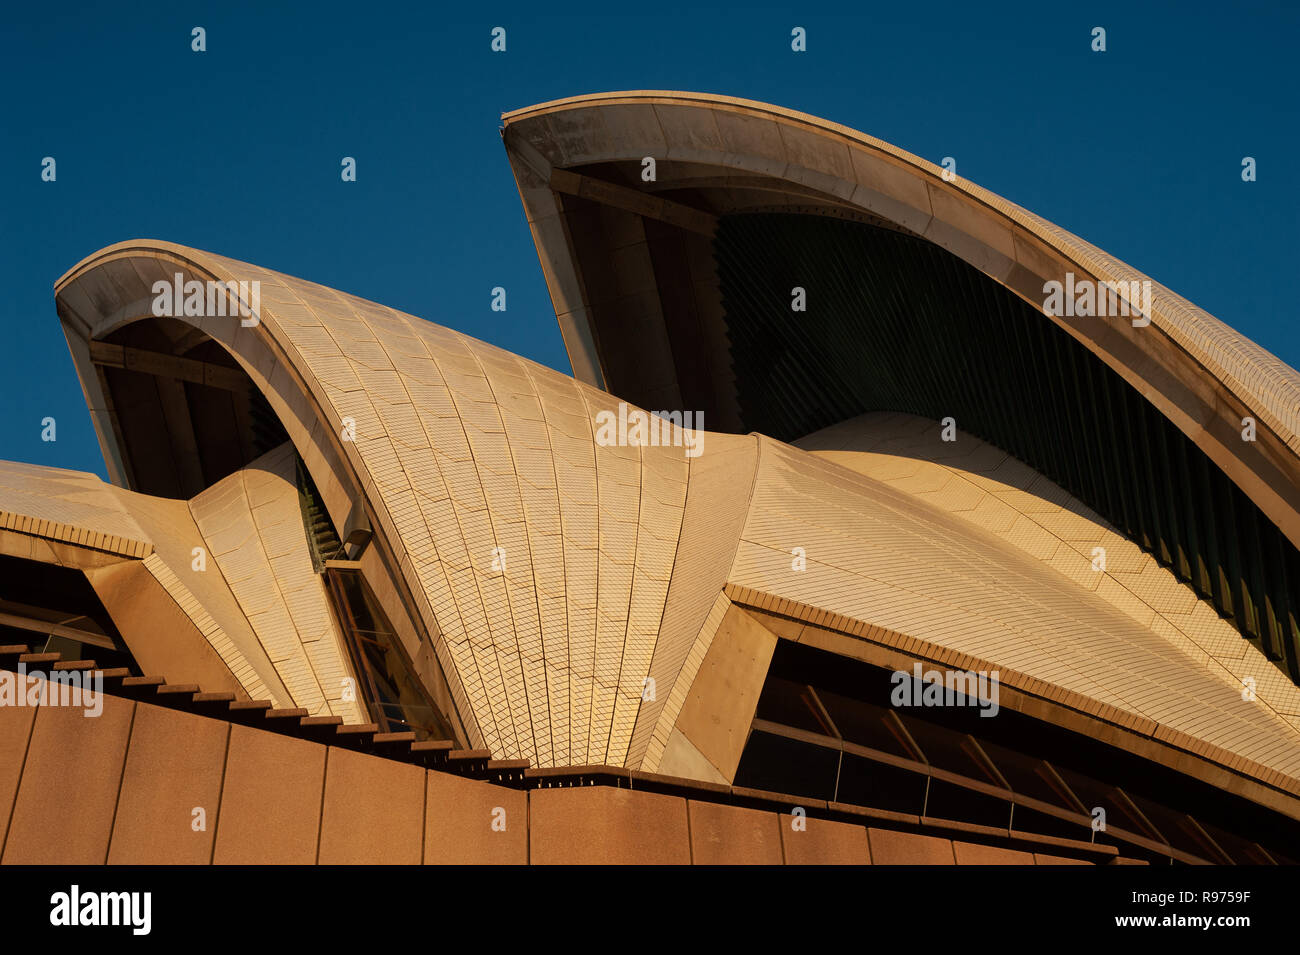 Curved Roof Structure Stock Photos Amp Curved Roof Structure